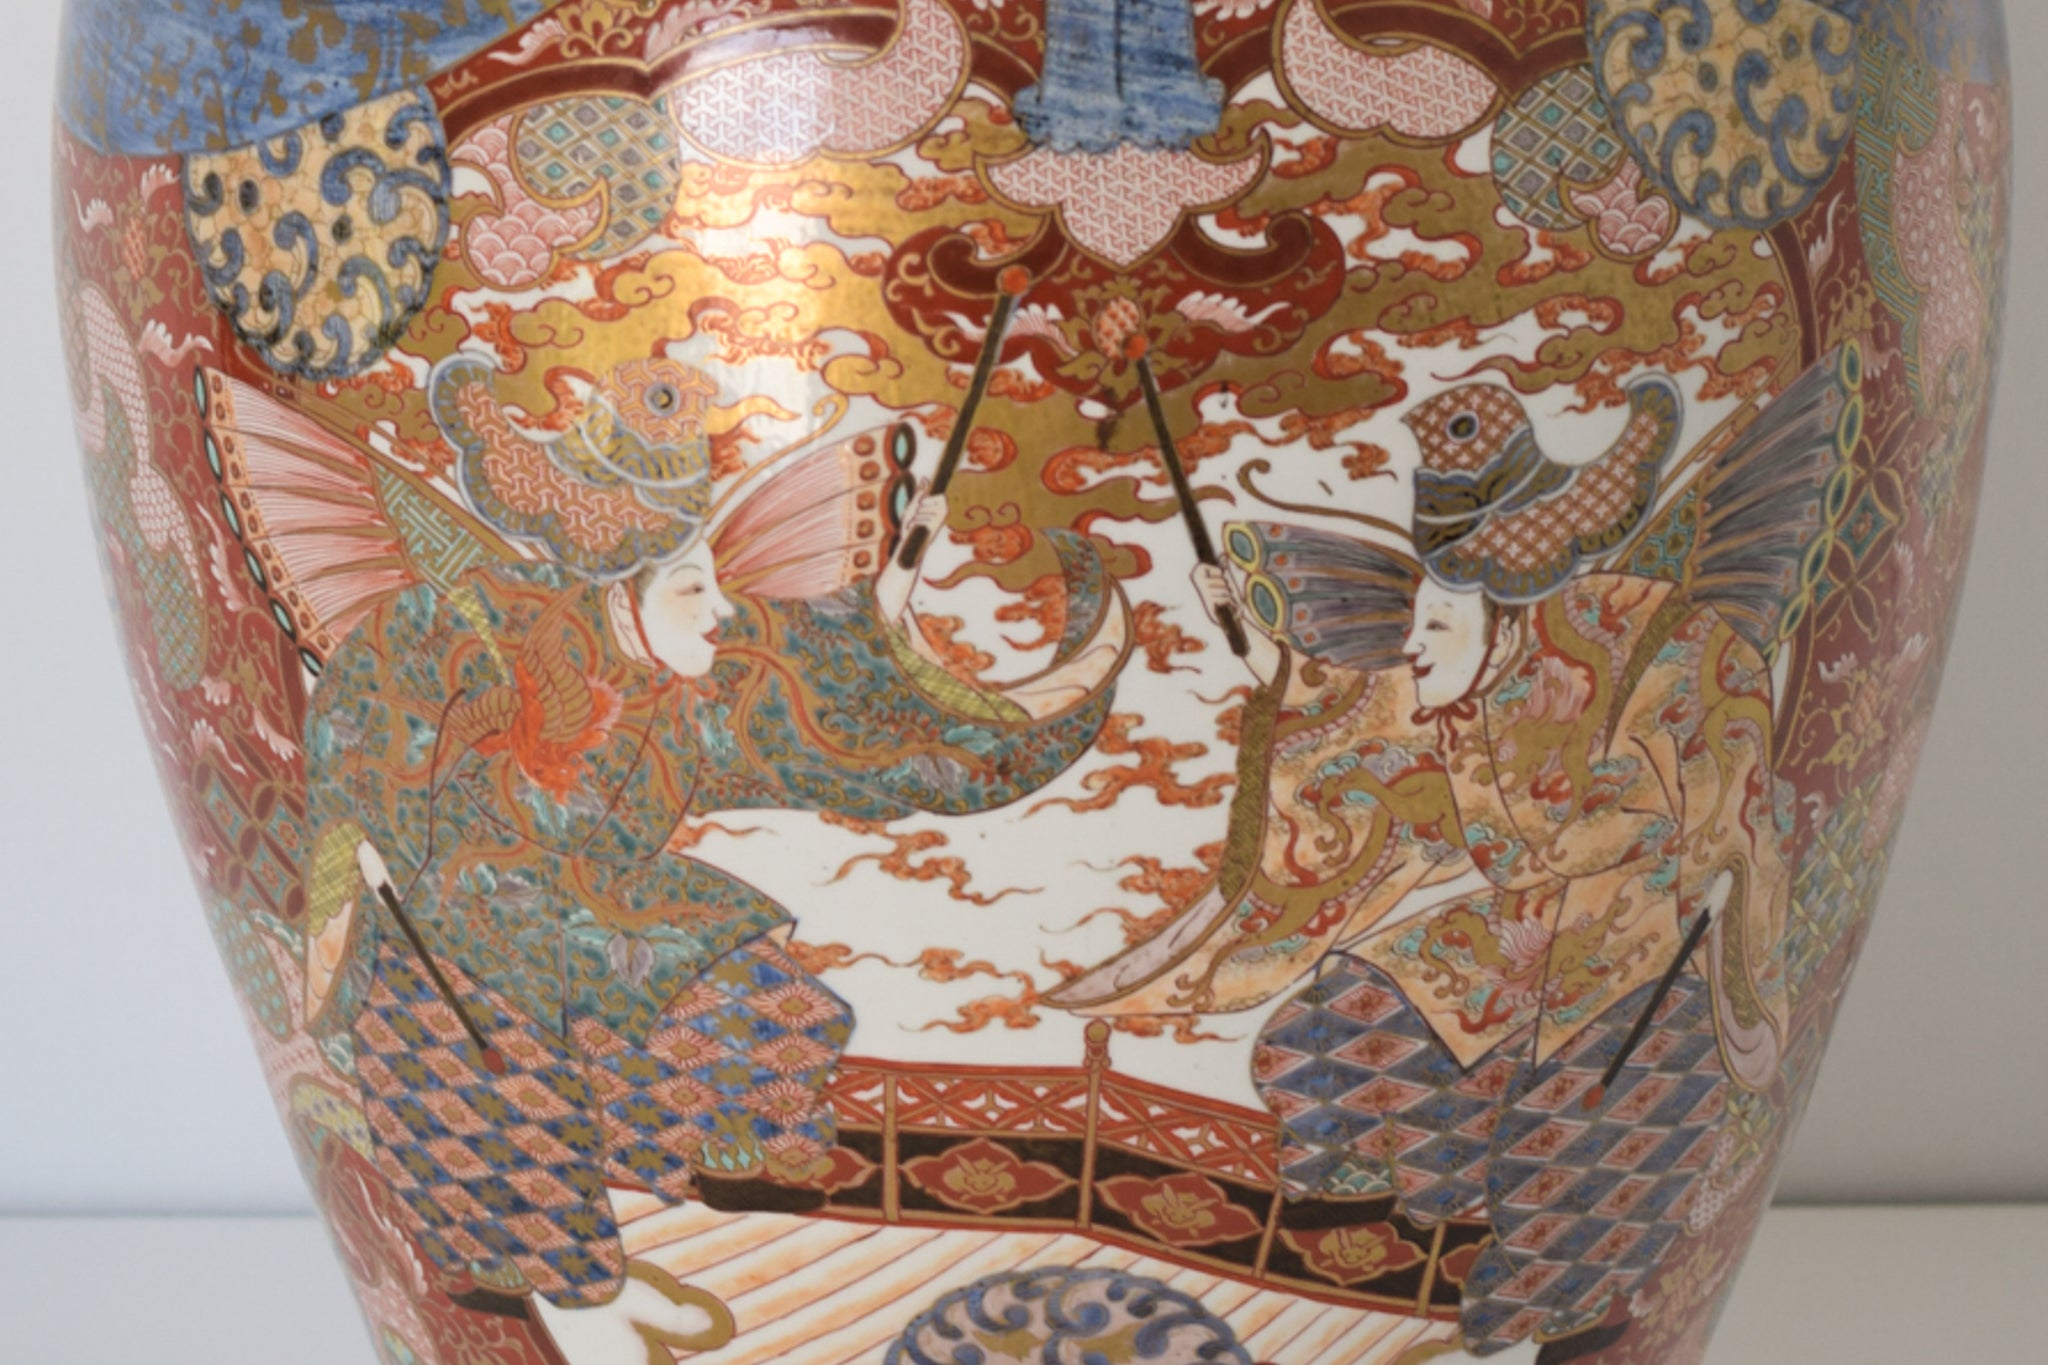 Large Arita Jar and Lid decorated with images of Samurais and Geishas_Detail